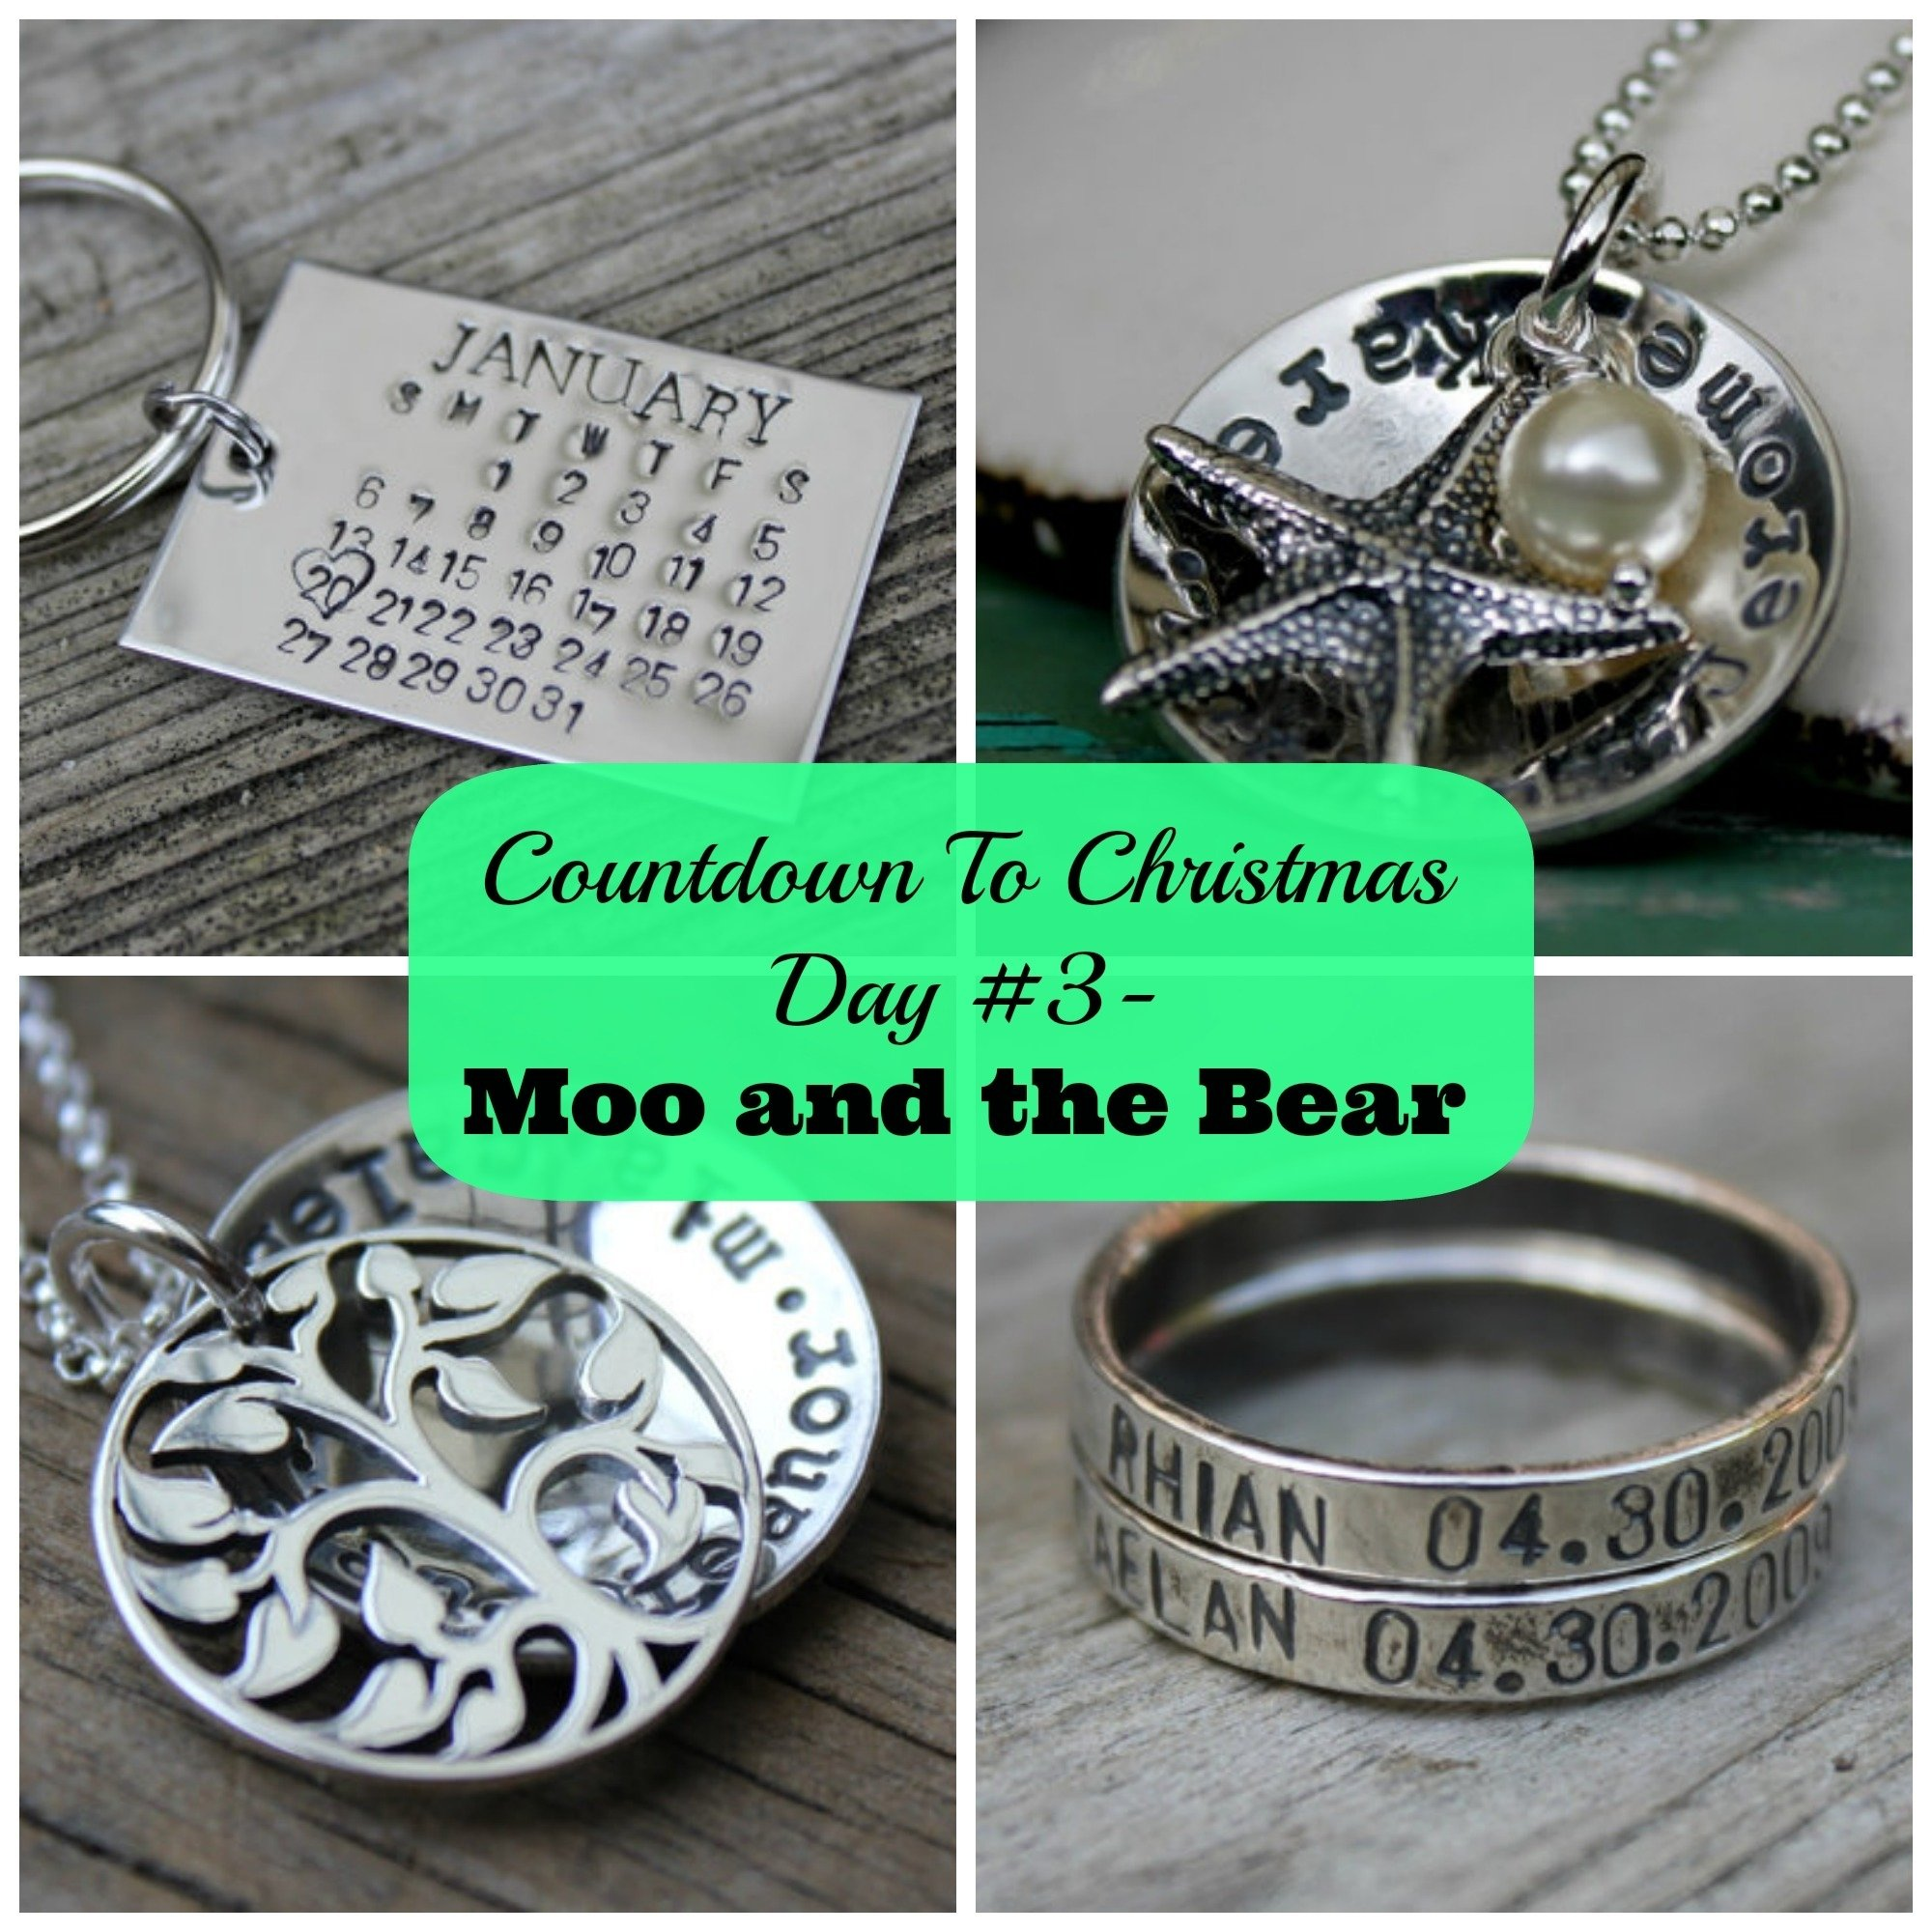 10 Most Recommended Unique Gift Ideas For Boyfriend gifts ideas for boyfriend christmas gifts ideas for him such as 2020